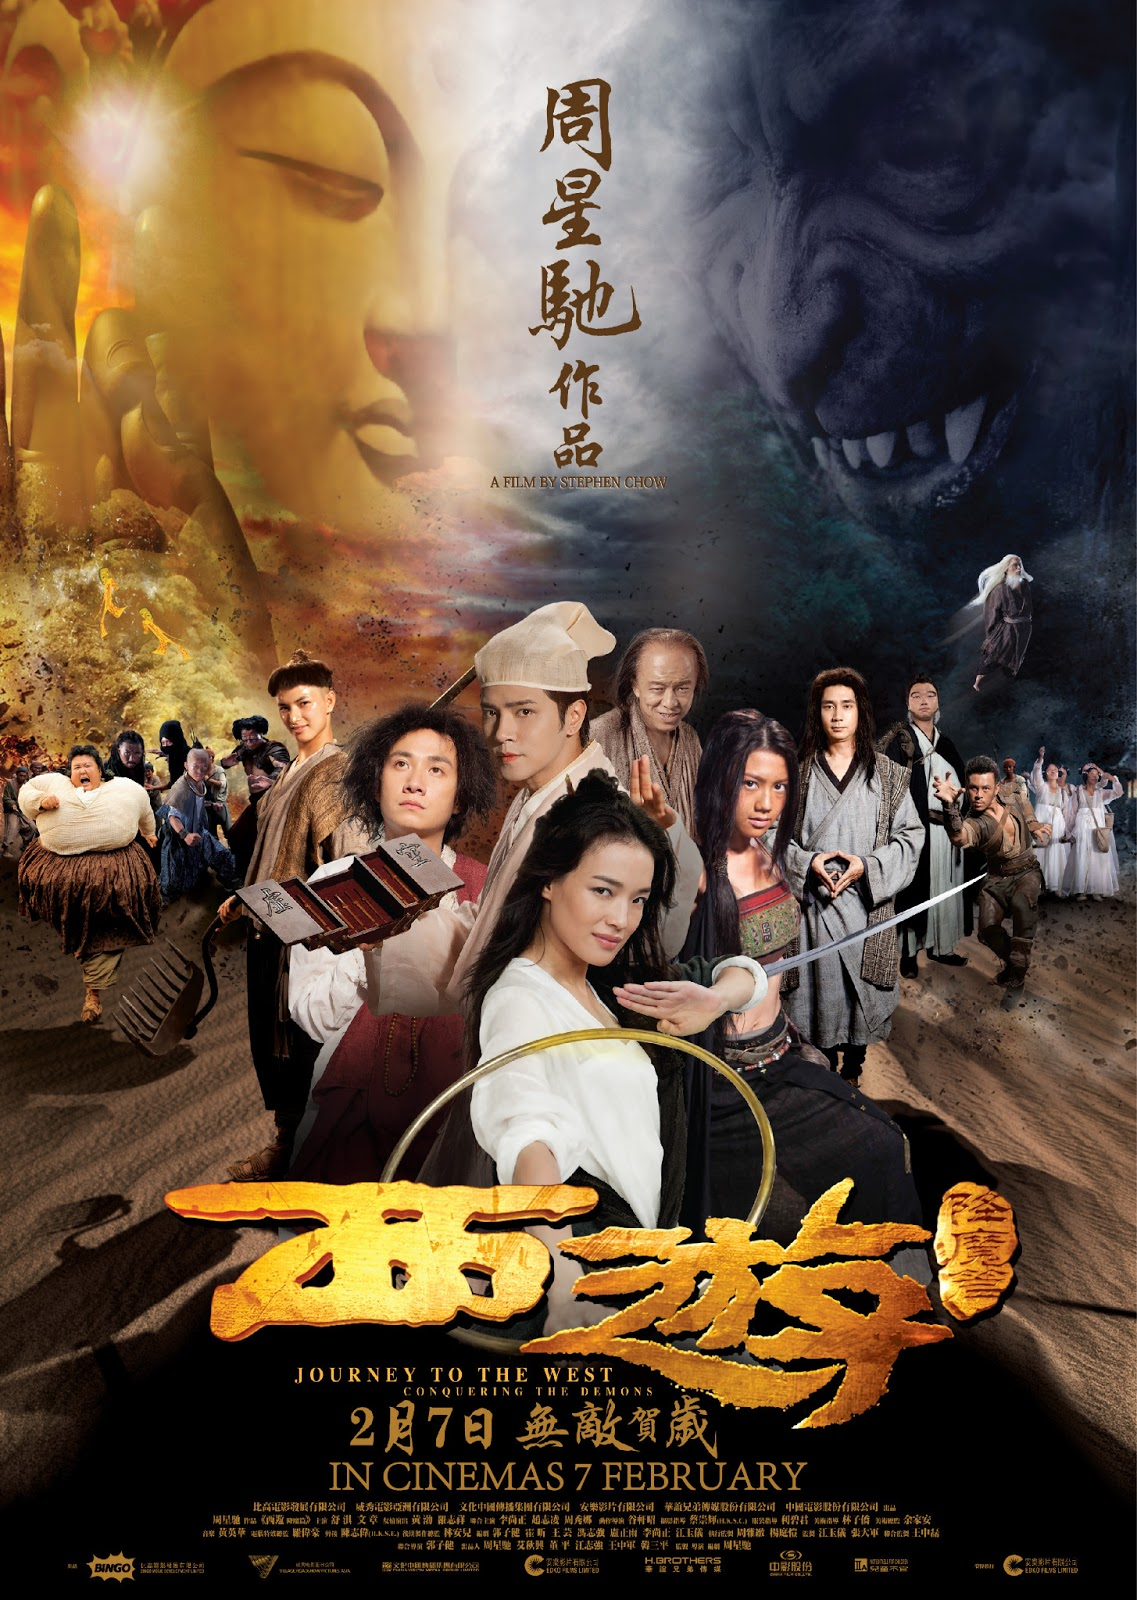 MOVIE] Journey To The West (2013) DVDRip AVI & MKV & RMVB